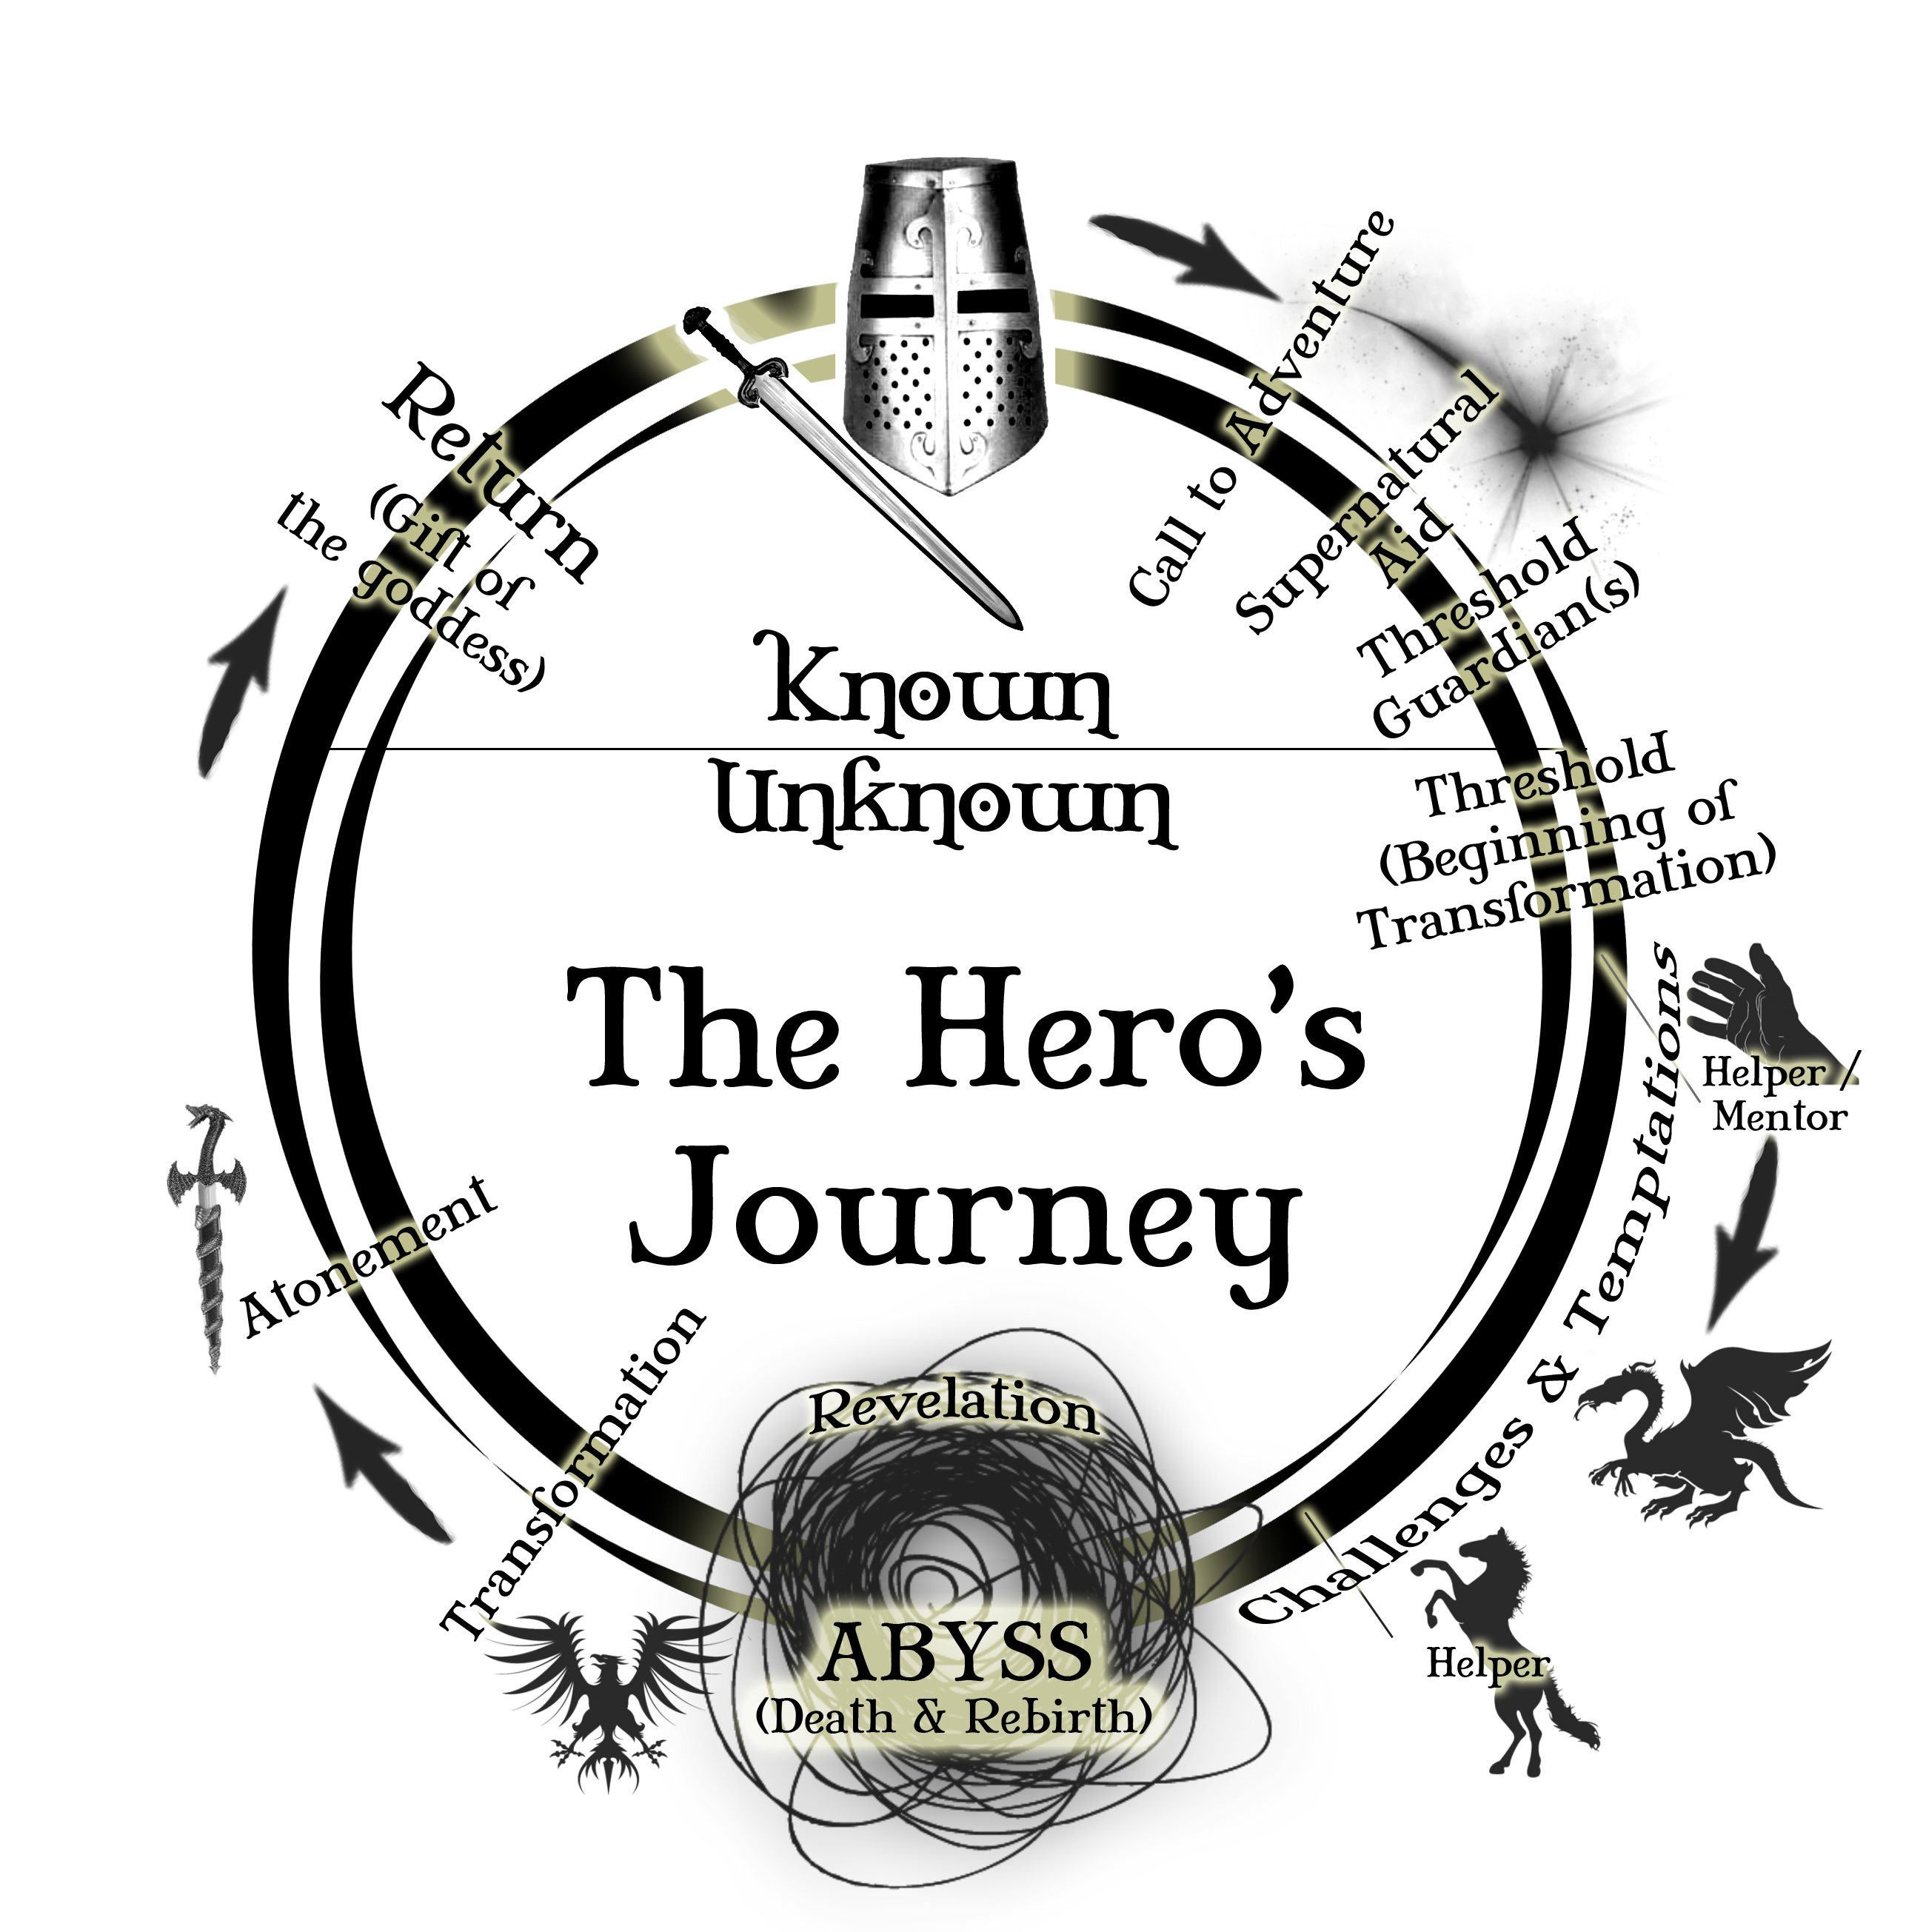 essay on heros journey